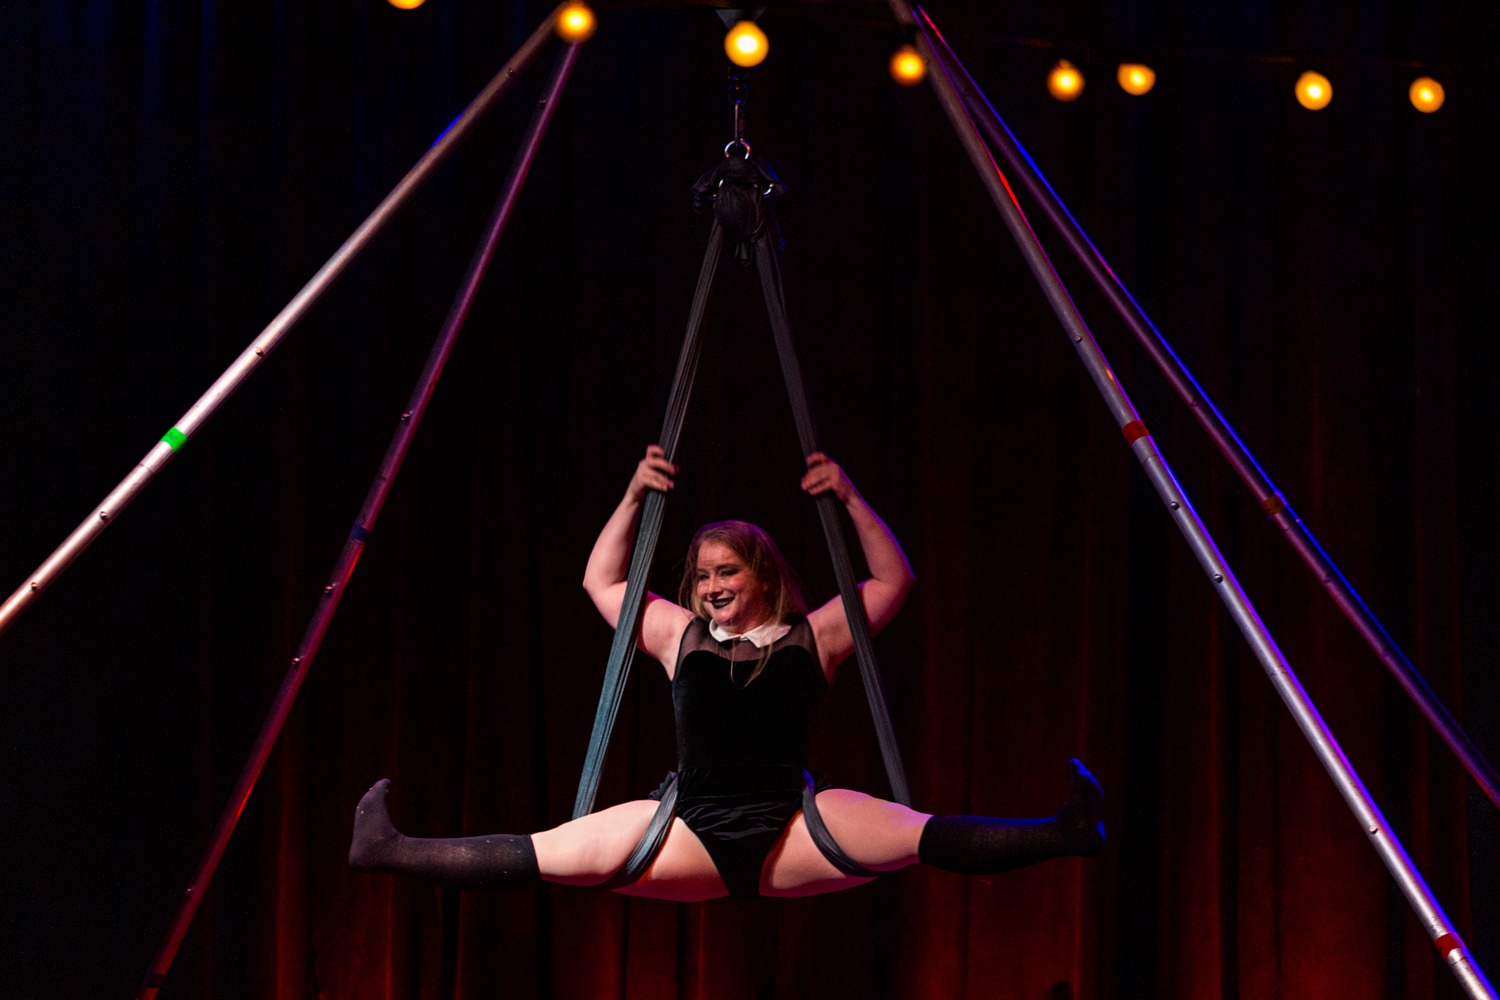 Night Circus: Witchcraft was a magical evening full of burlesque, pole dancing, and aerial silk acts performed in a dark, Halloween theme at the Woodward Theater. The entertaining evening, presented by Passion Productions, took place Friday, October 25, conjuring up tarot card readings, drinks, vendors, and more. / Image: Catherine Viox // Published: 10.26.19